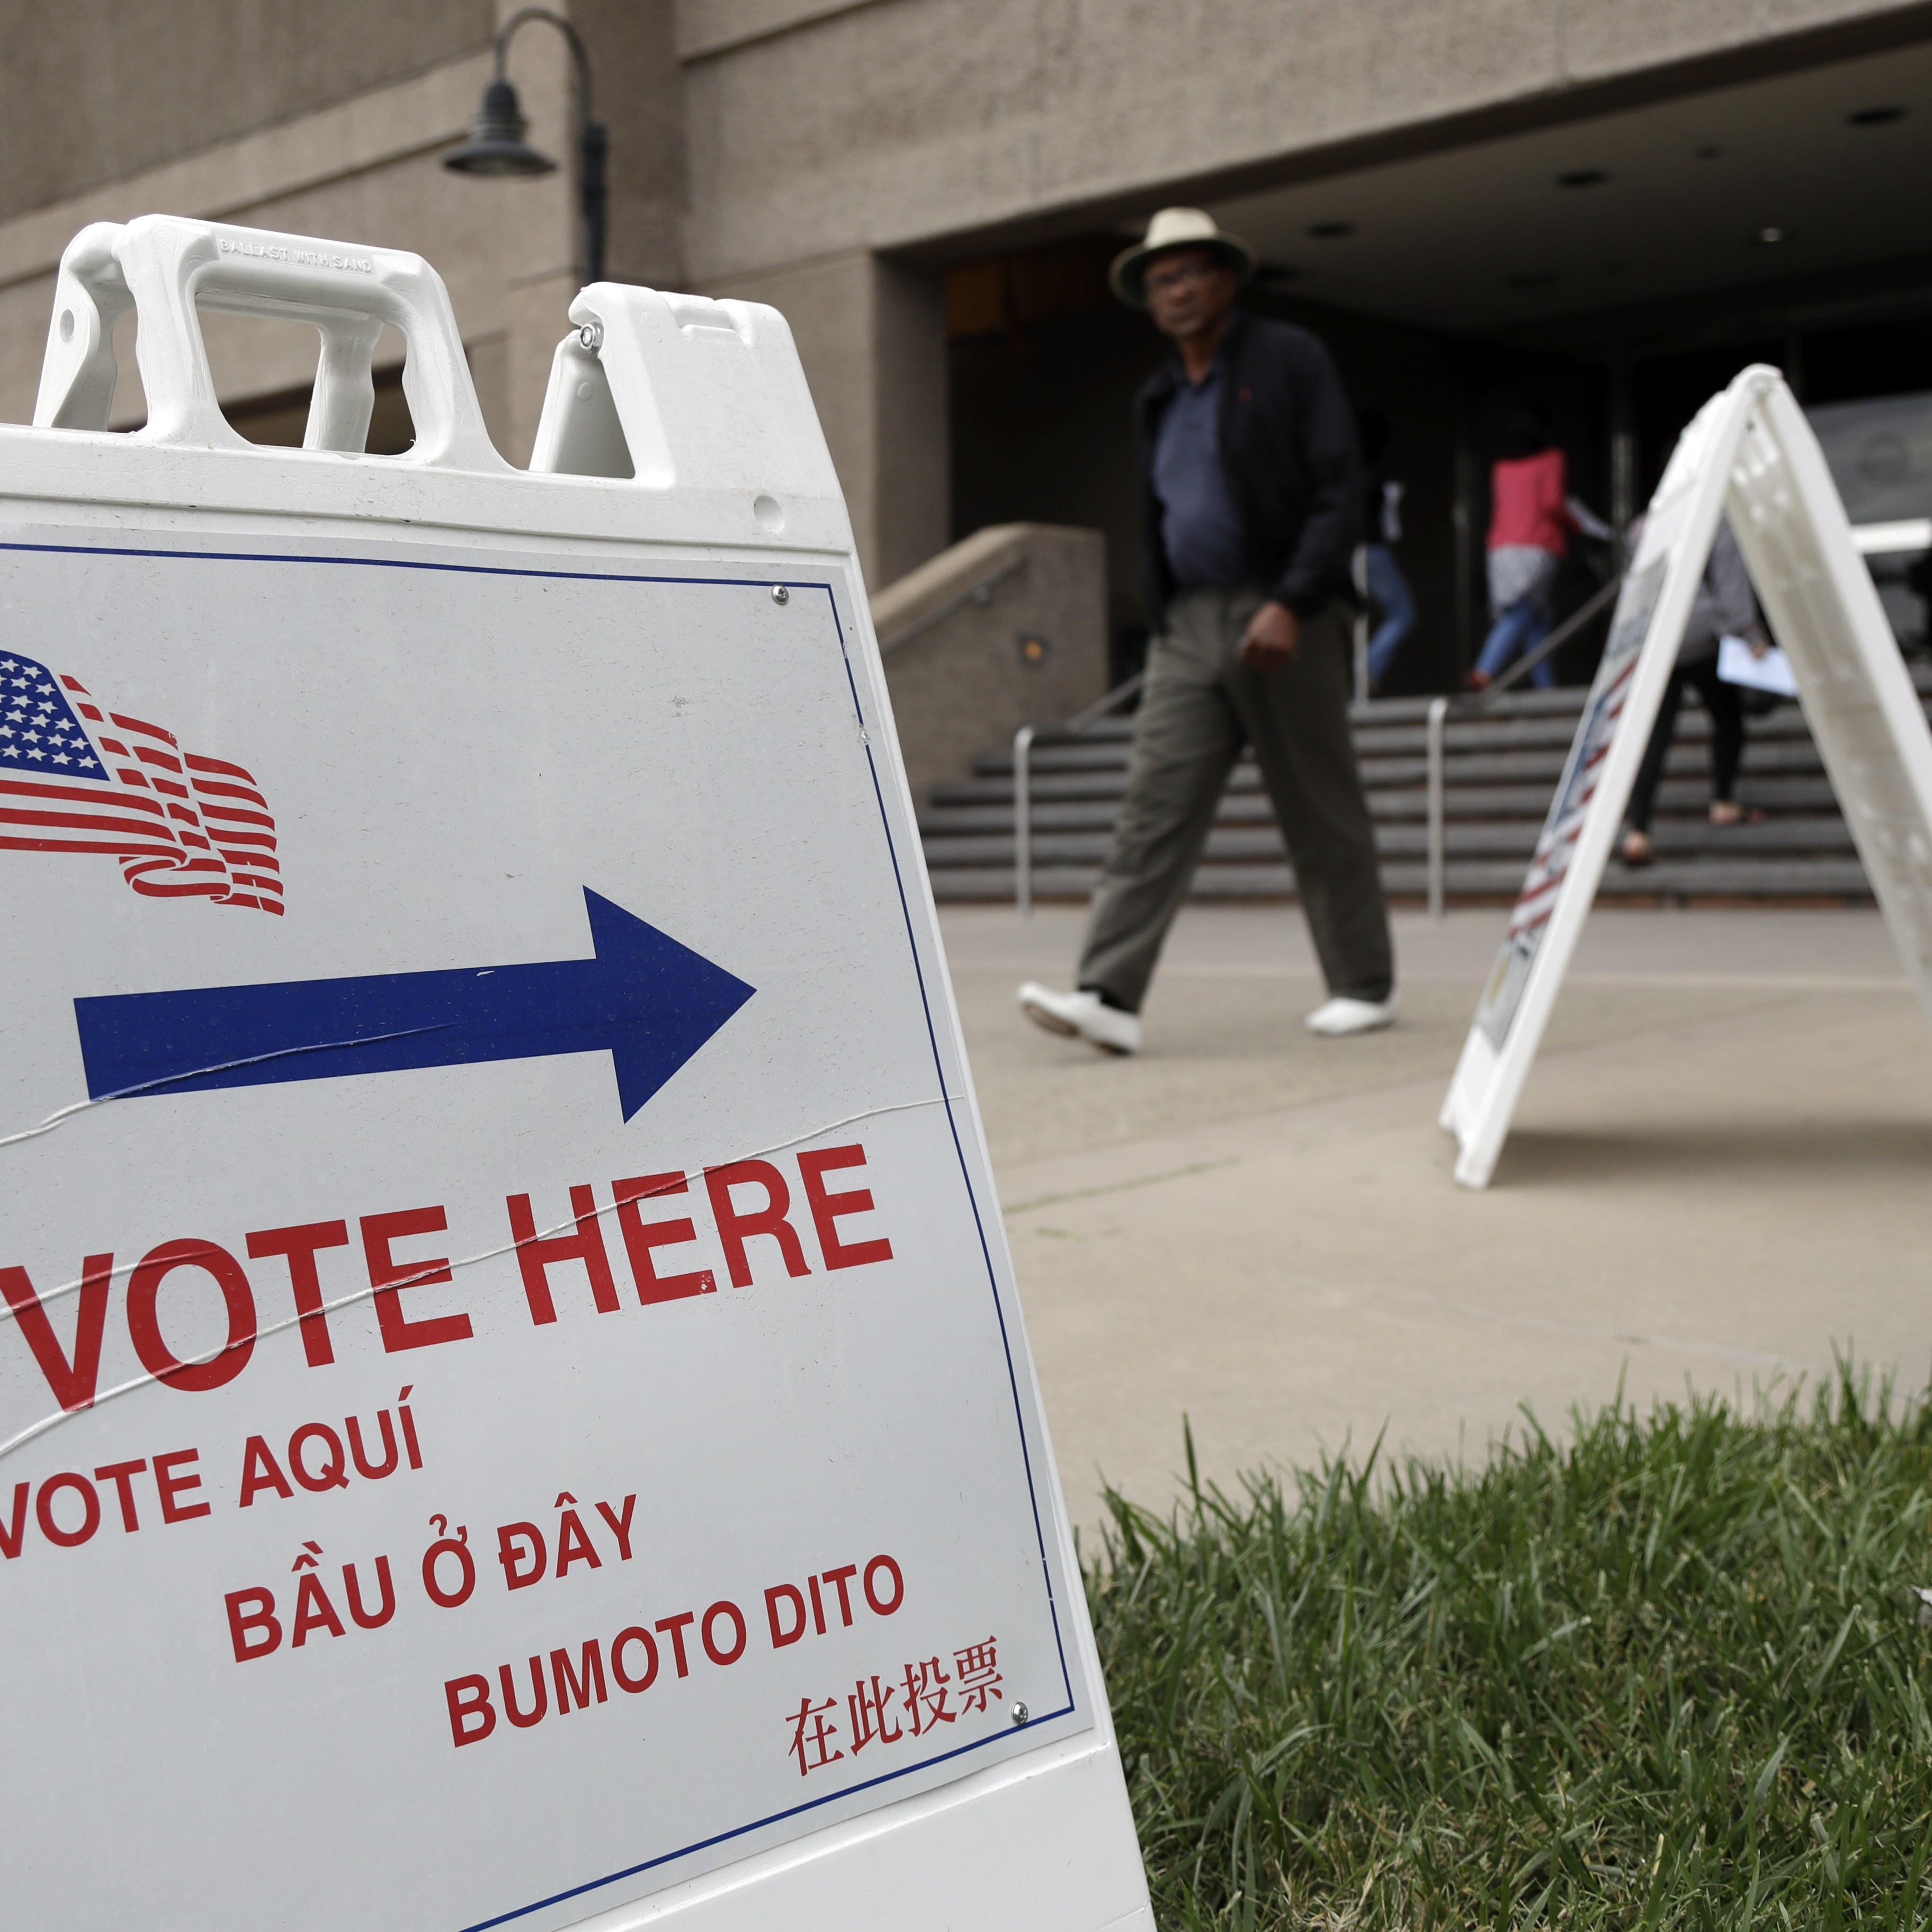 Here's an easy guide to the 11 propositions on November's ballot in California